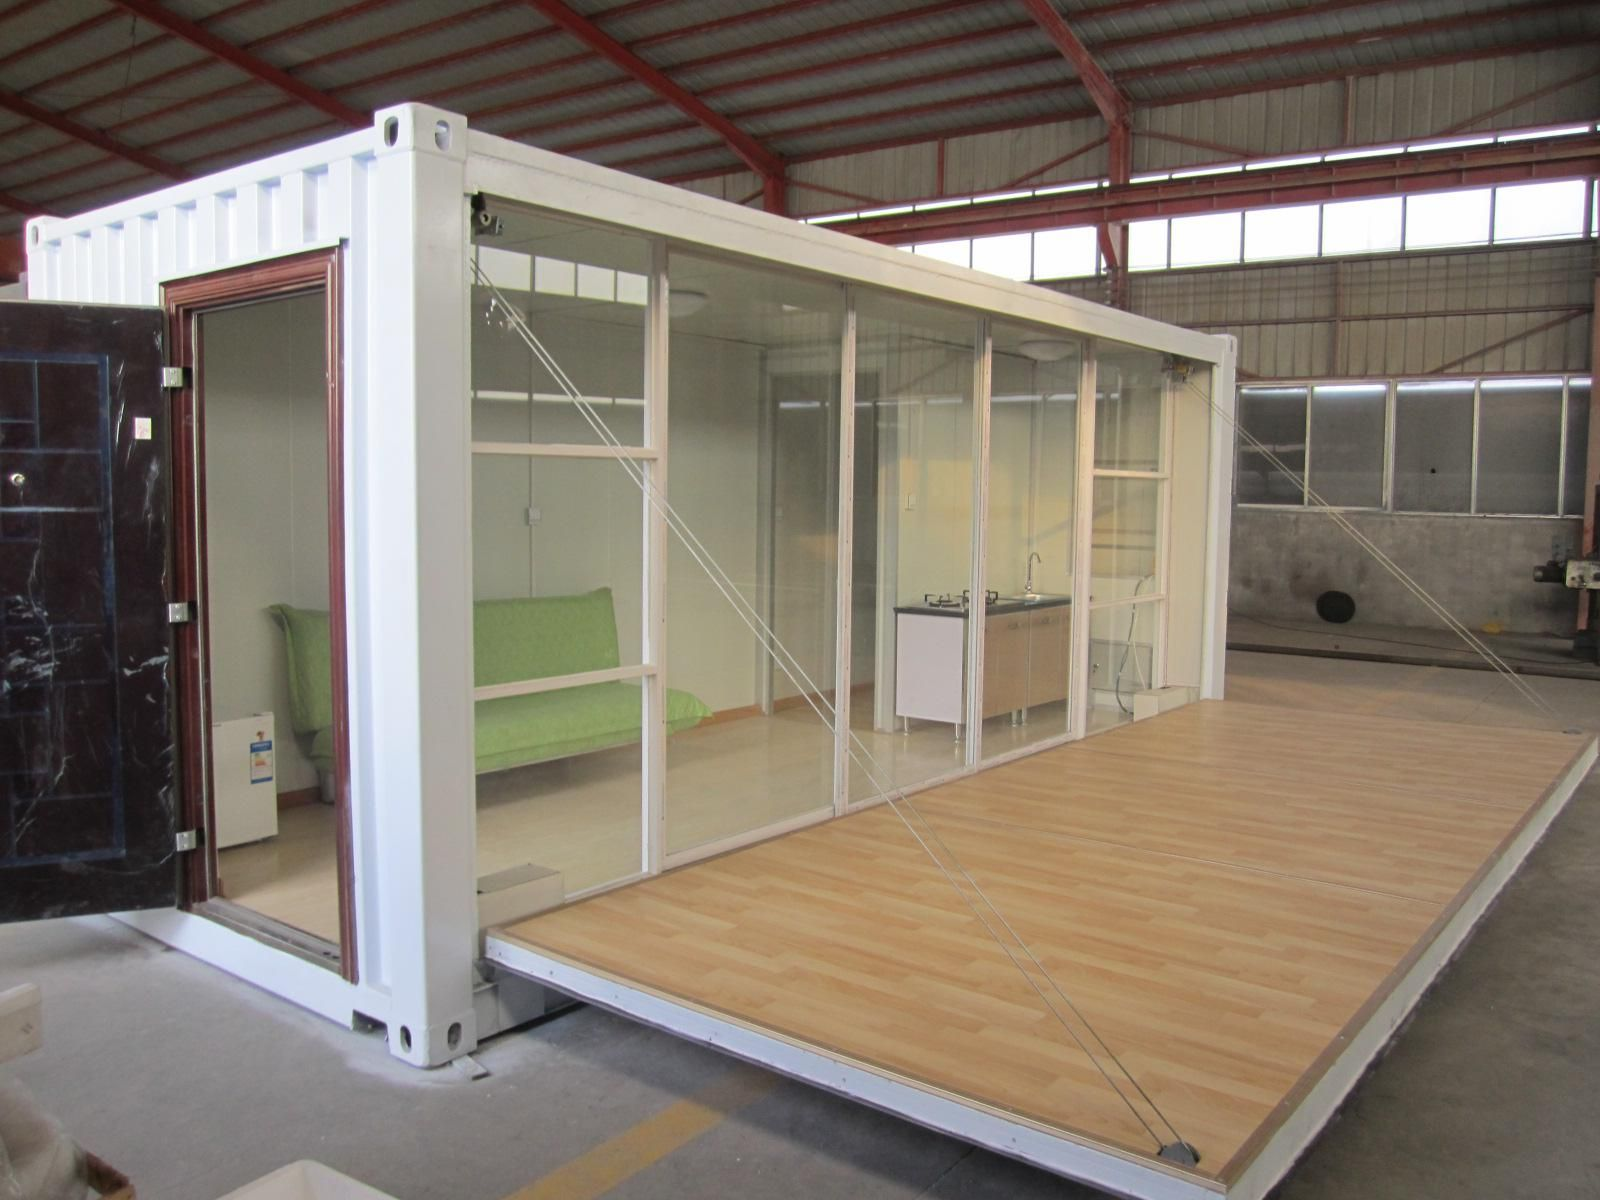 20ft glass wood modified container house -classroom/office idea